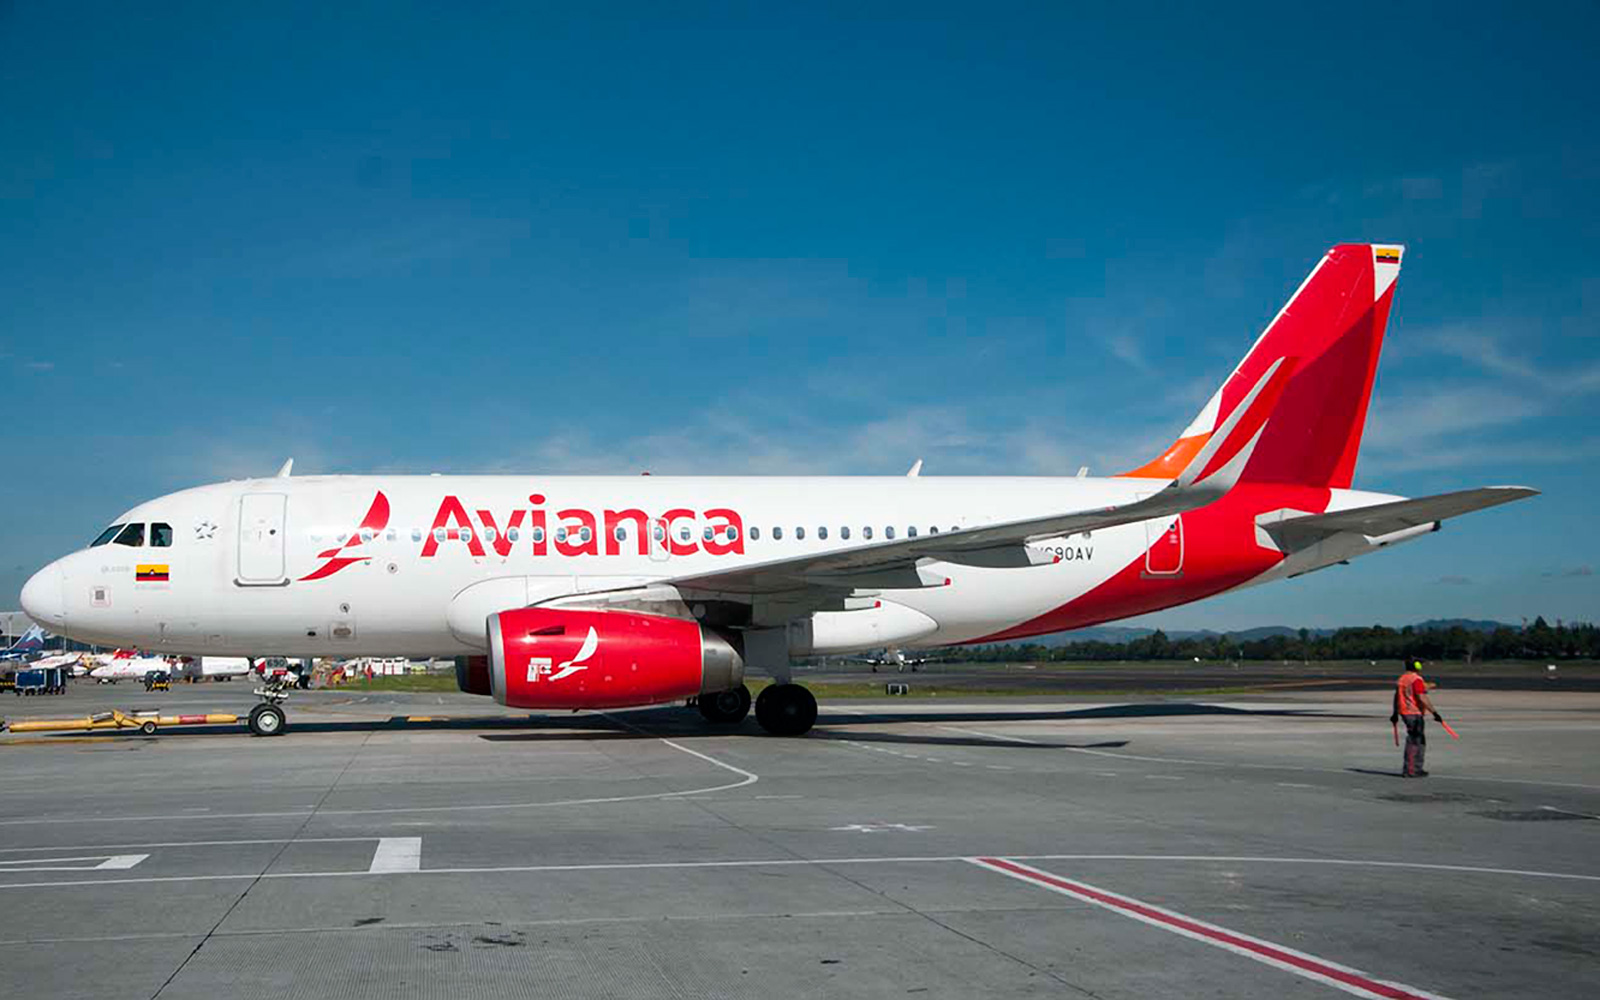 Avianca Airlines Airbus A319